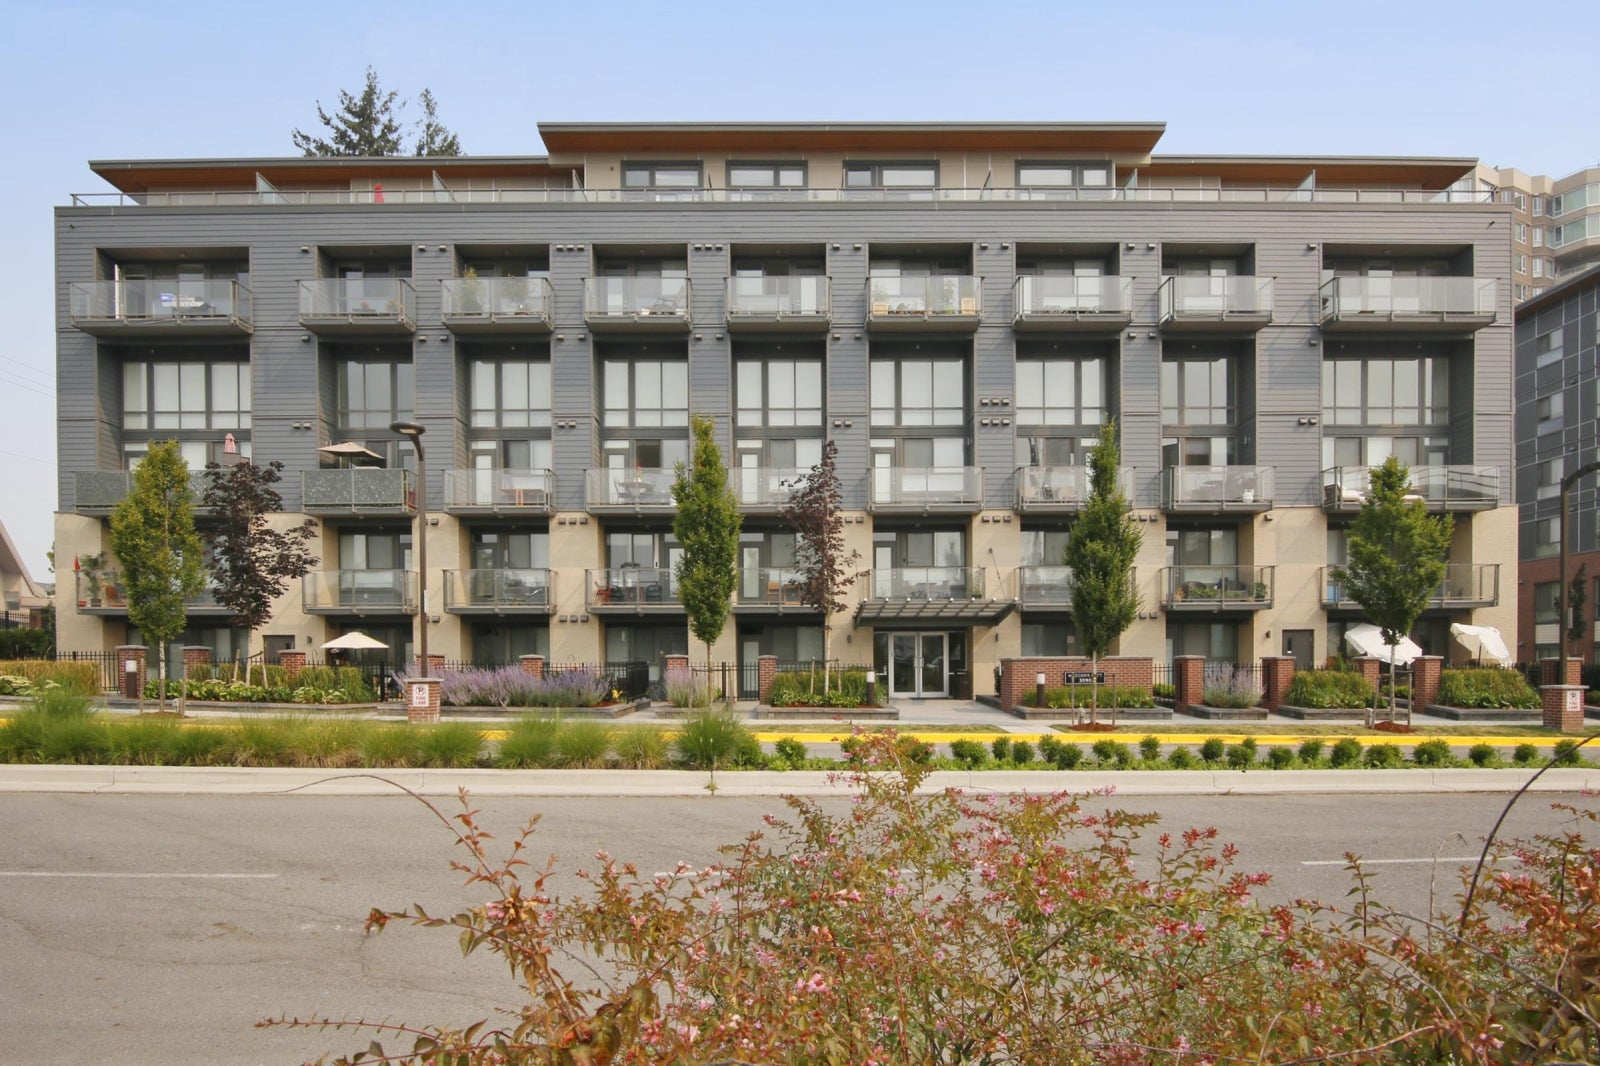 111 3090 GLADWIN ROAD - Central Abbotsford Apartment/Condo for sale, 2 Bedrooms (R2194428) #1